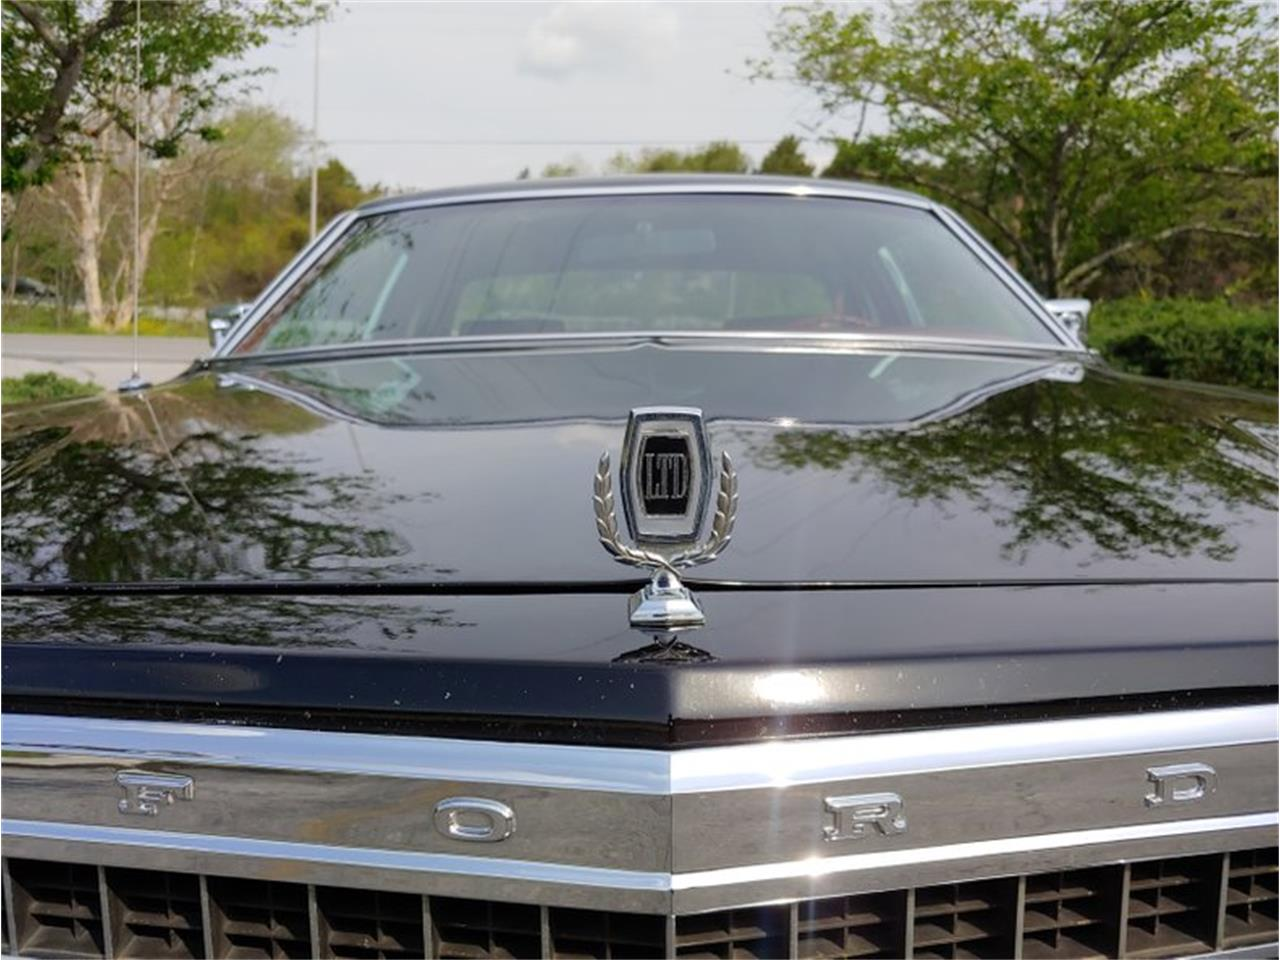 1978 Ford LTD for sale in Cookeville, TN – photo 91